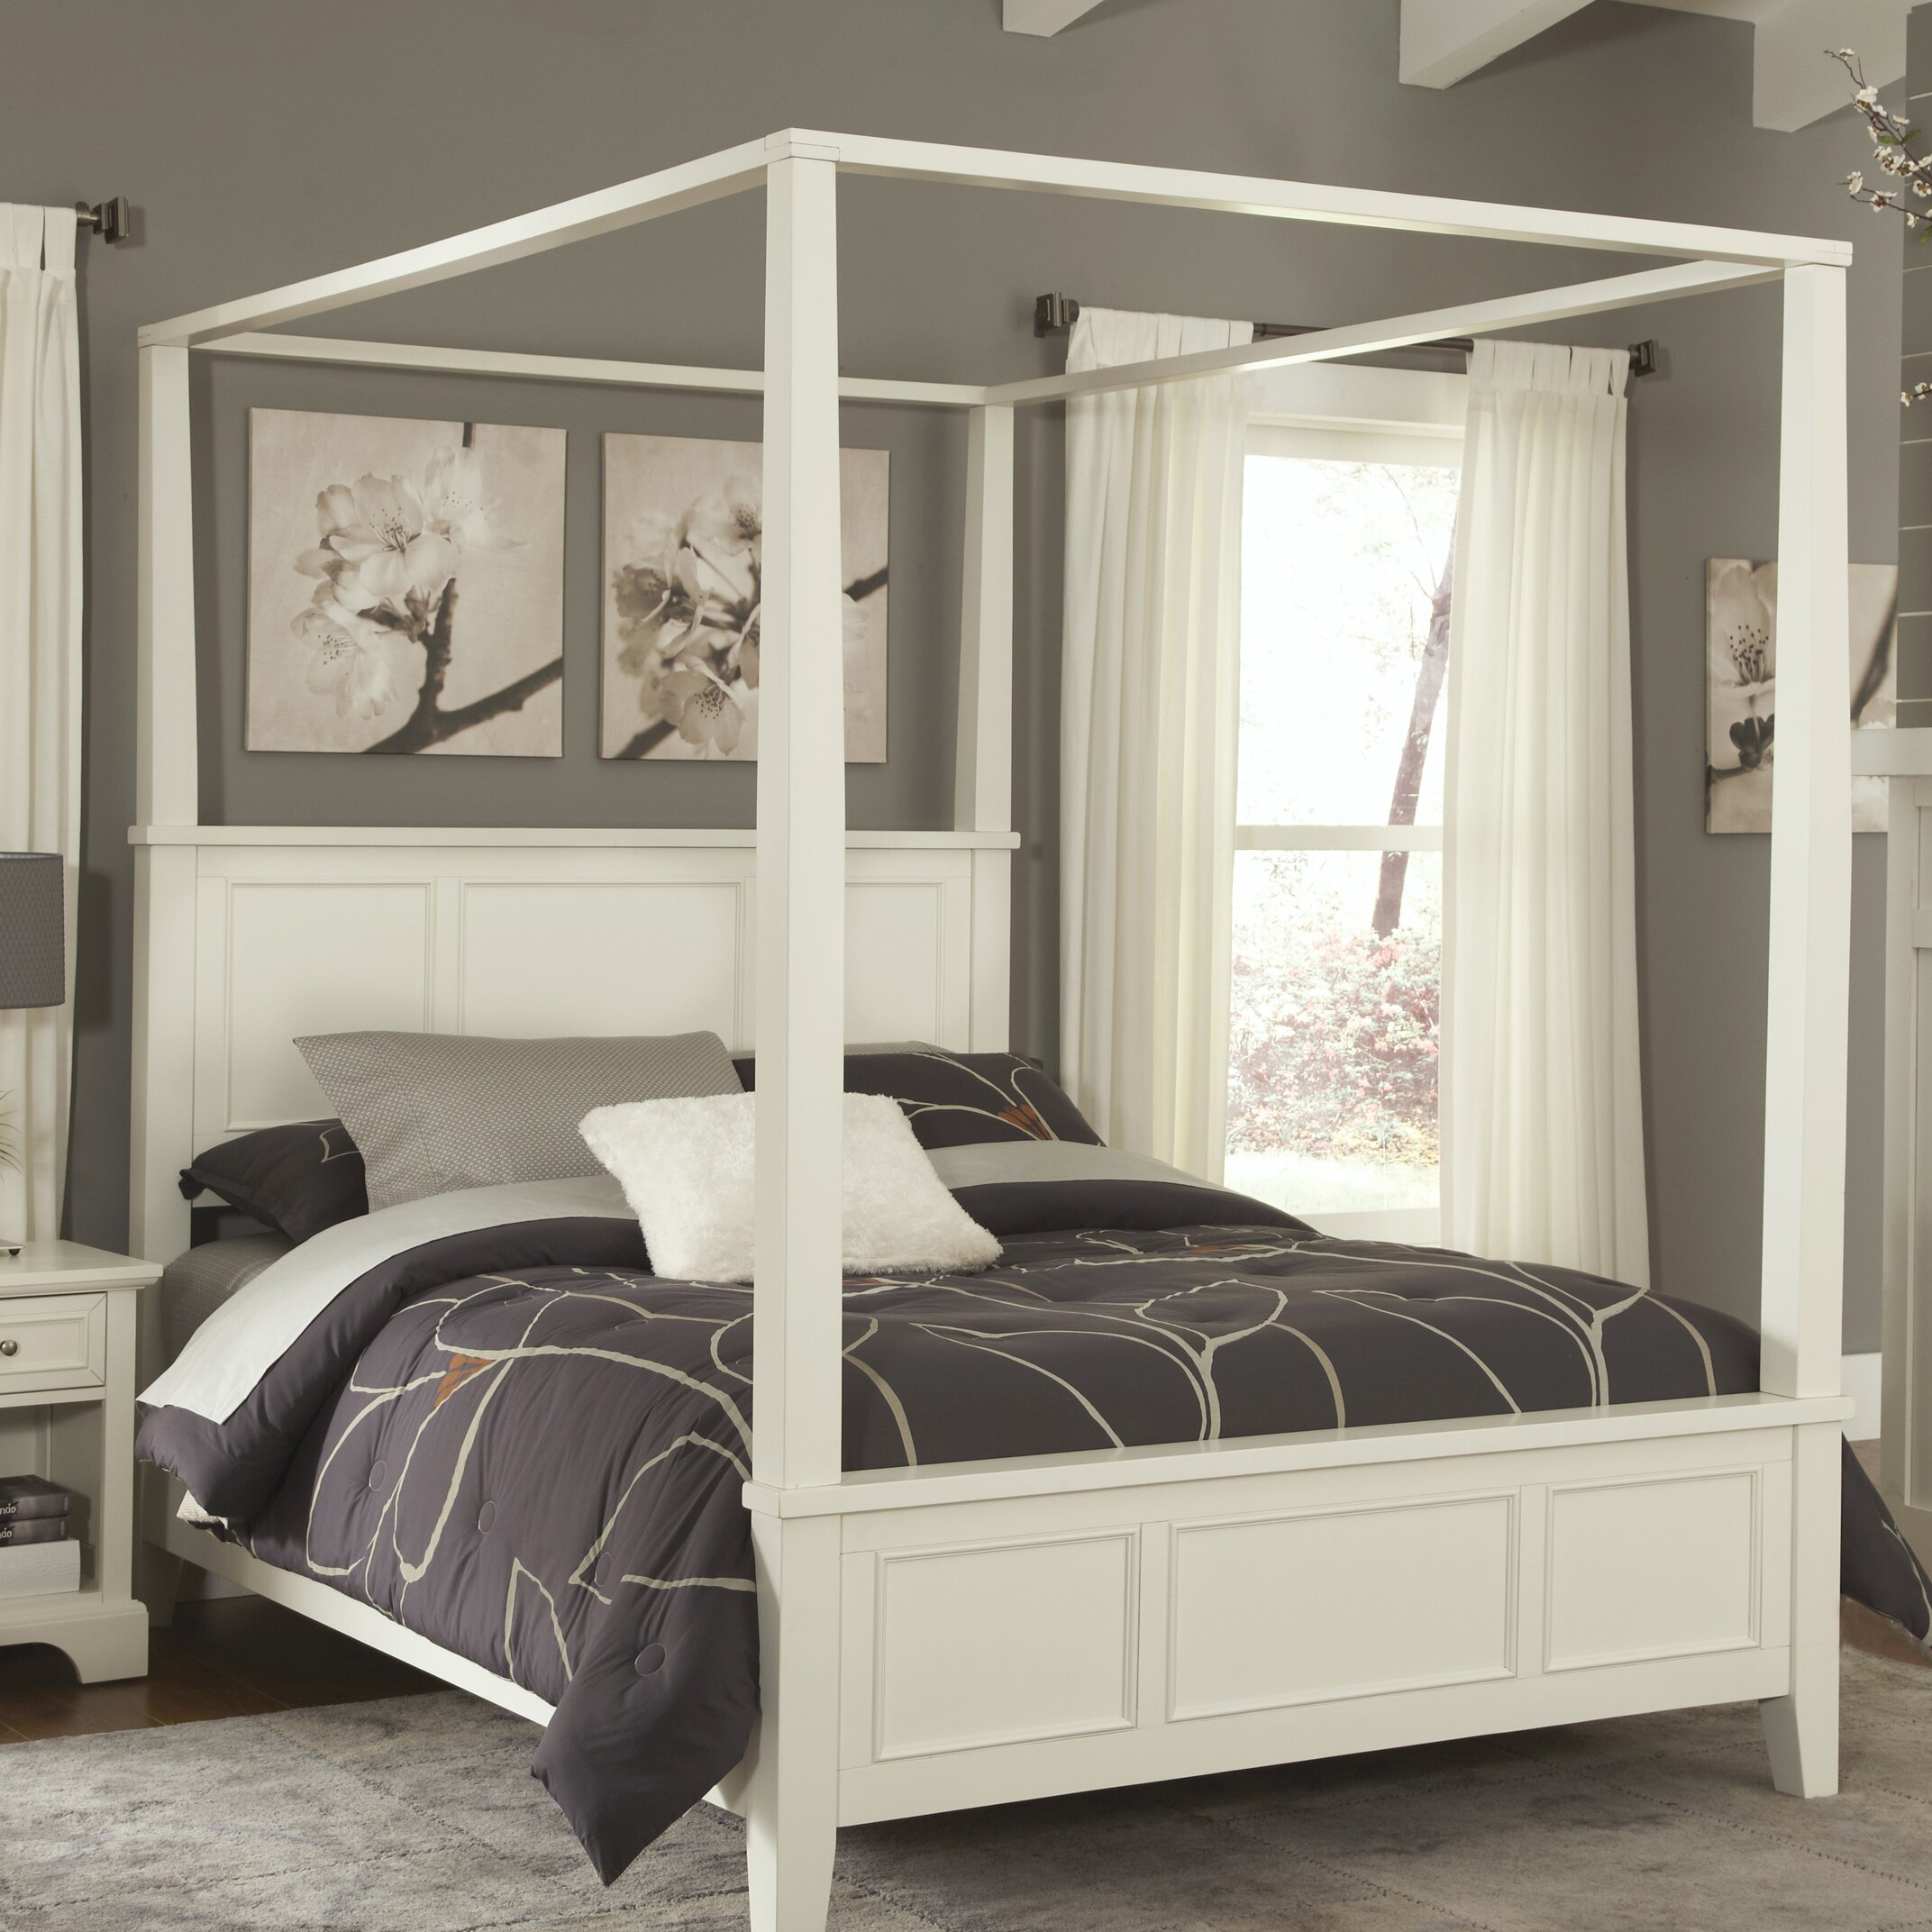 affordable canopy beds youull love wayfair with types of canopy beds.